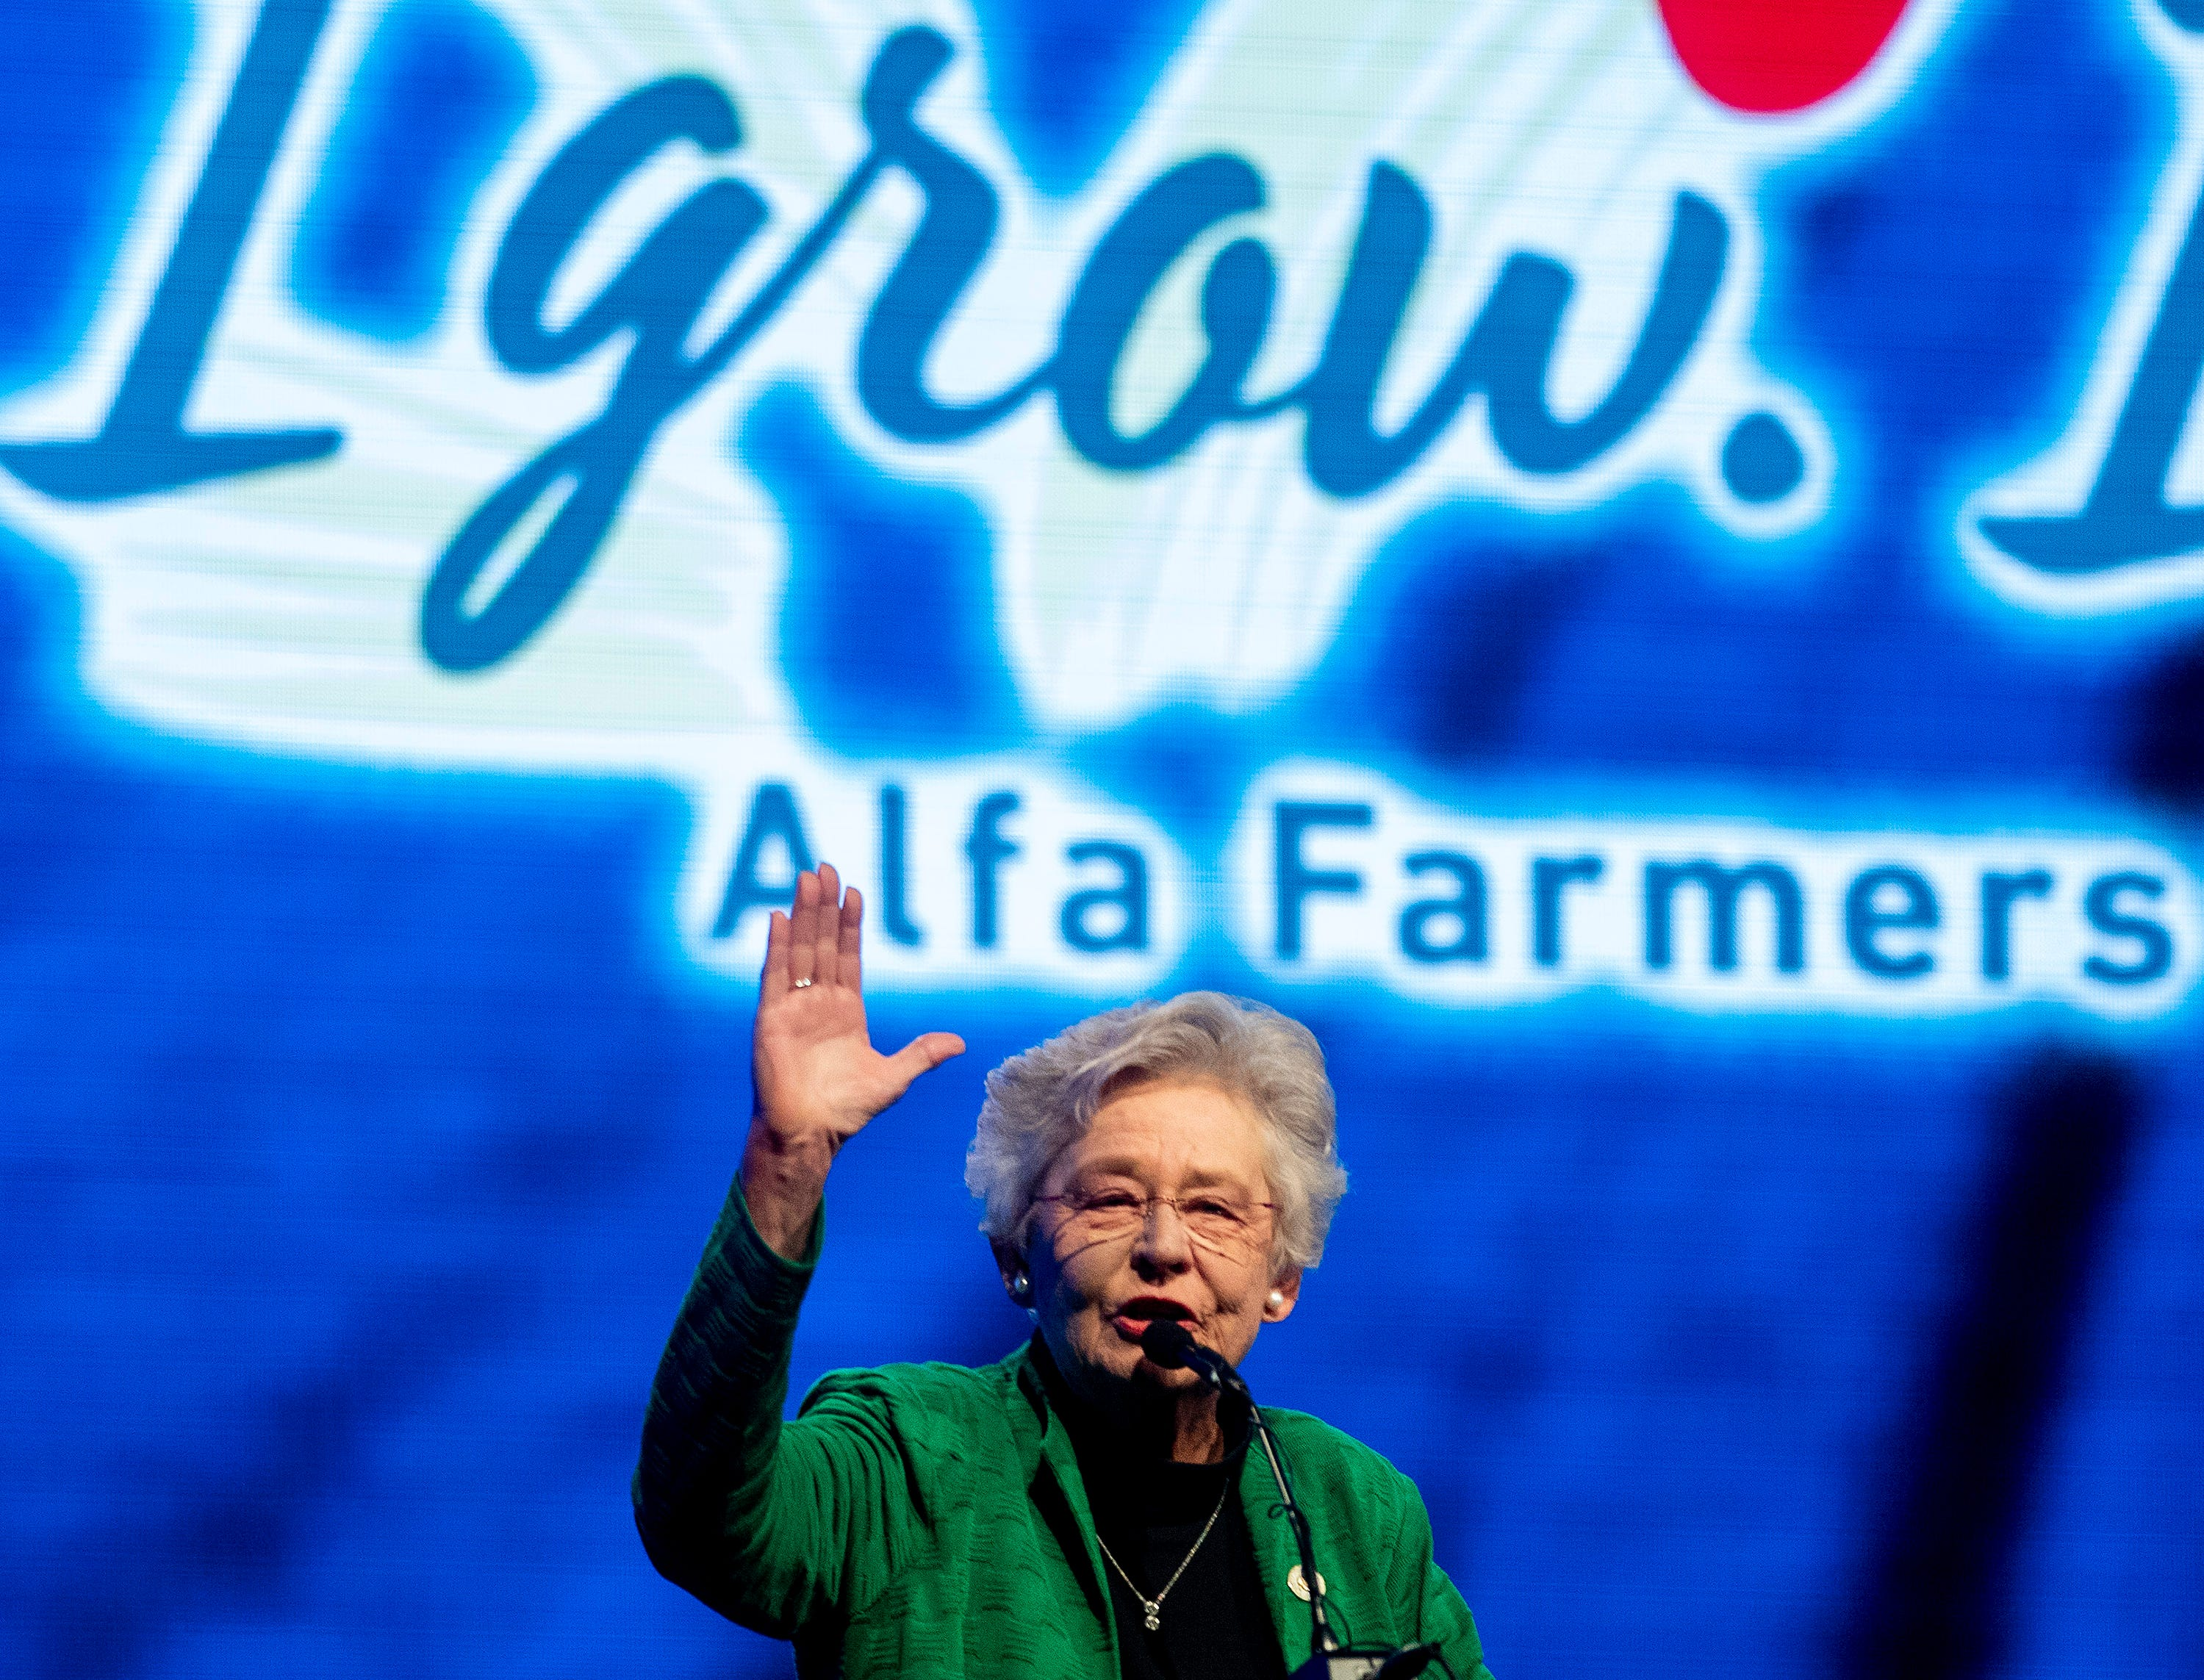 Governor Kay Ivey welcomes everyone to the keynote dinner of the Alfa Farmers Annual Meeting at the Convention Center in Montgomery, Ala., on Monday evening December 3, 2018.